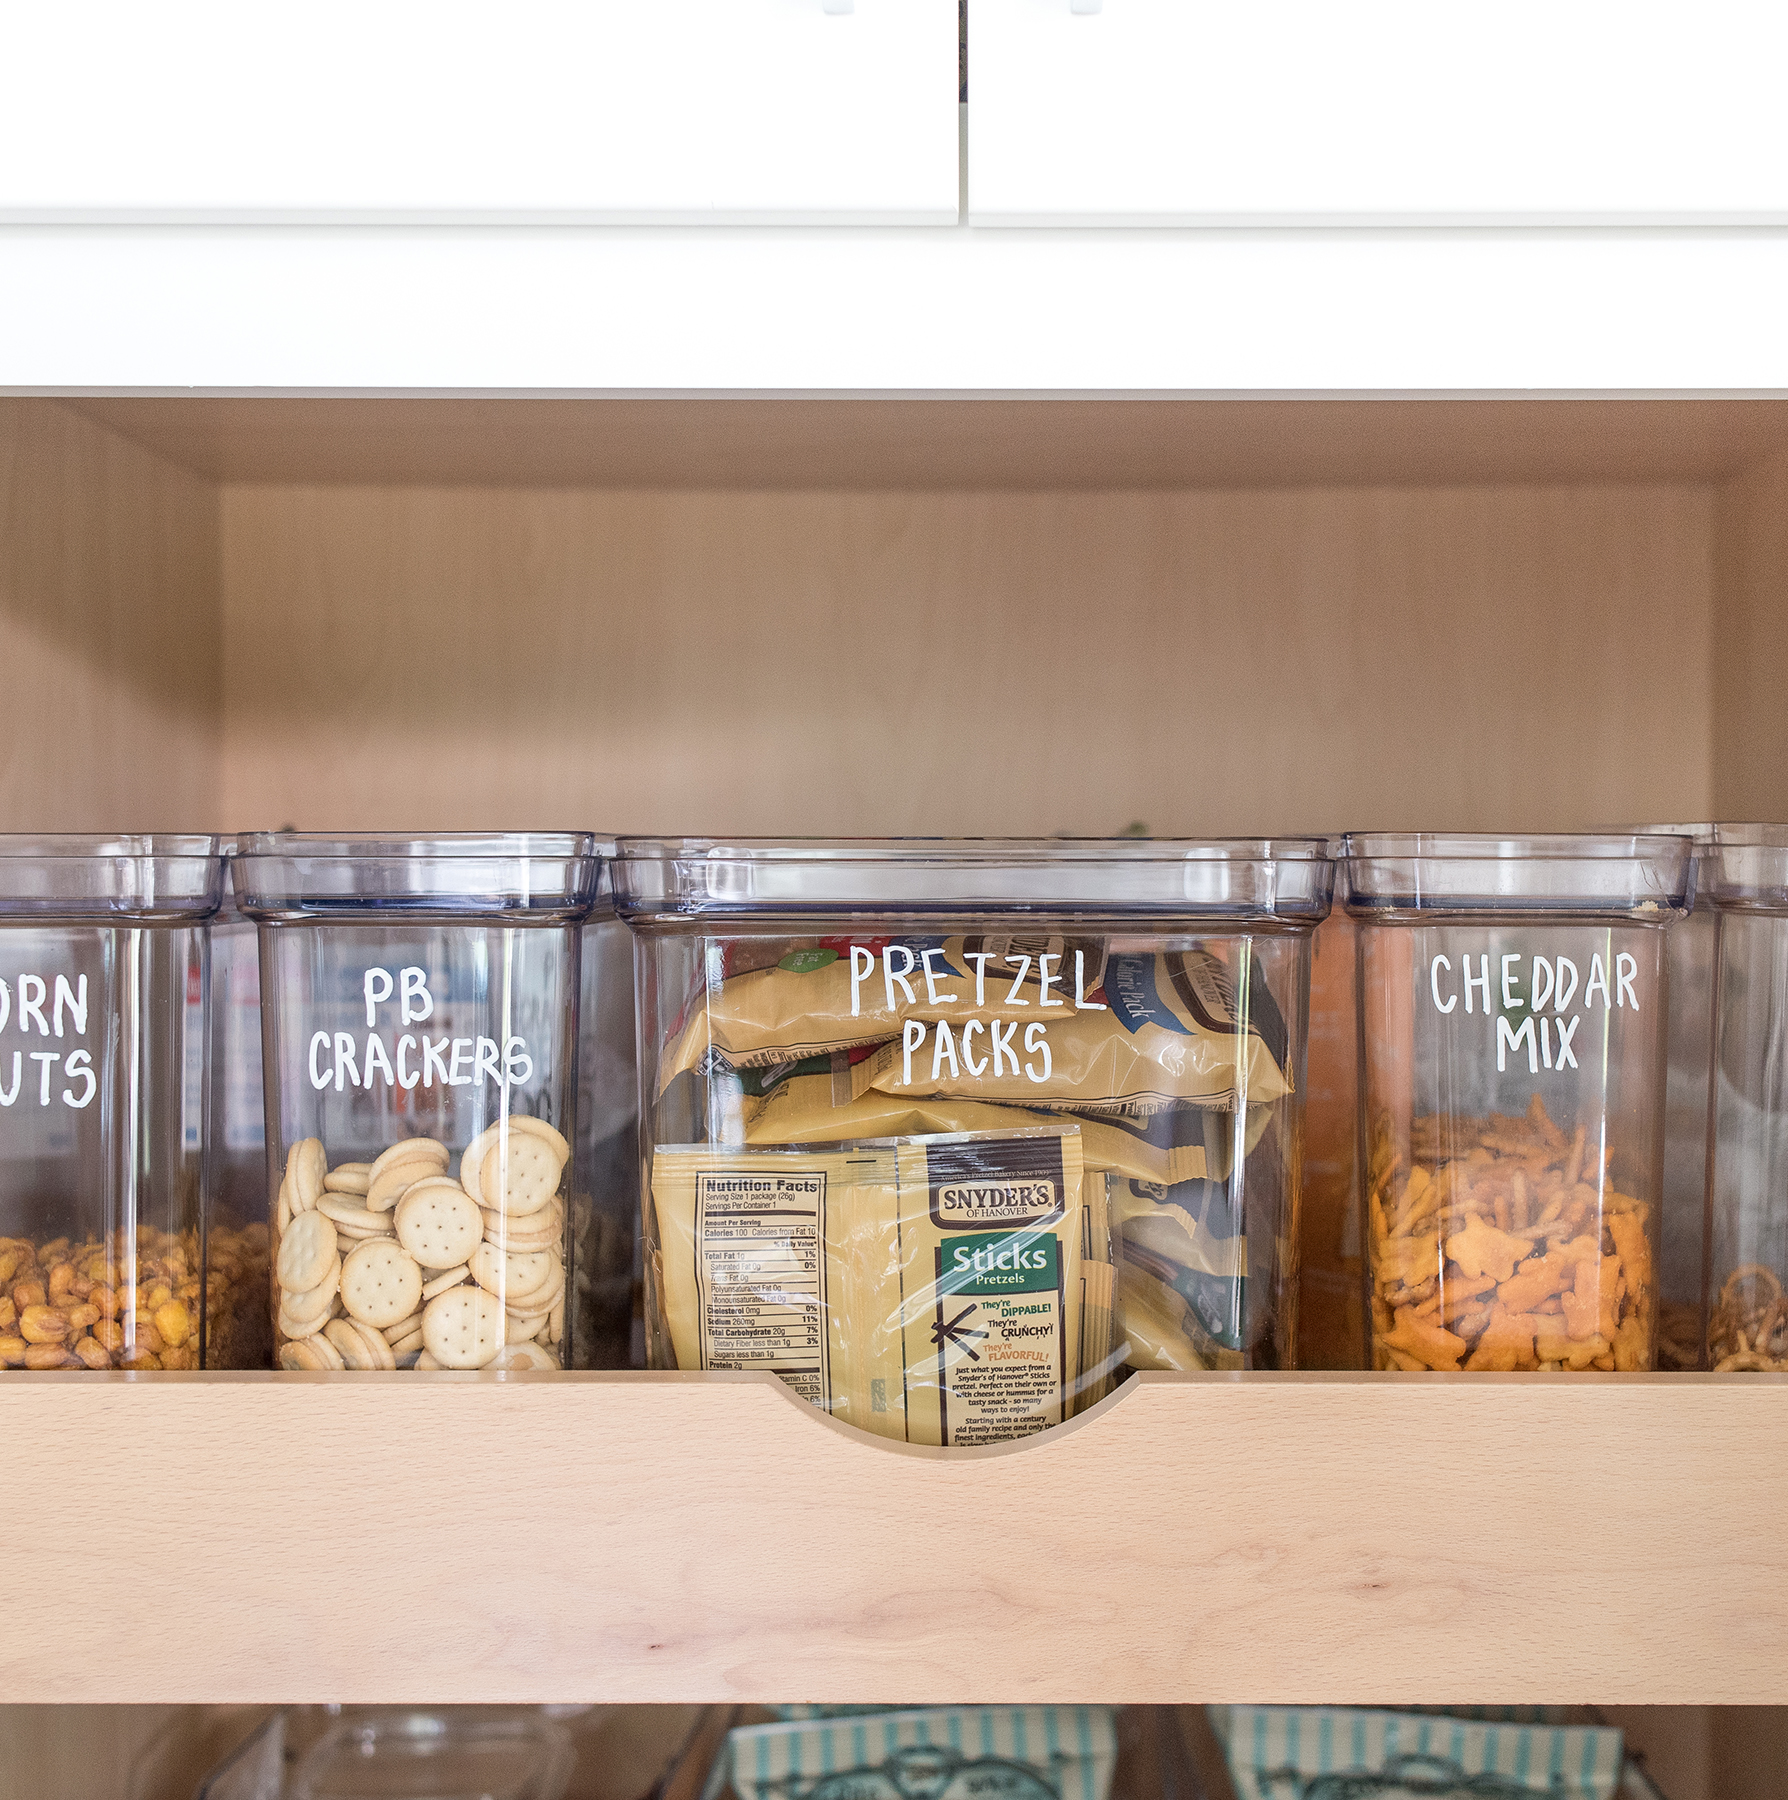 Pantry with clear bins